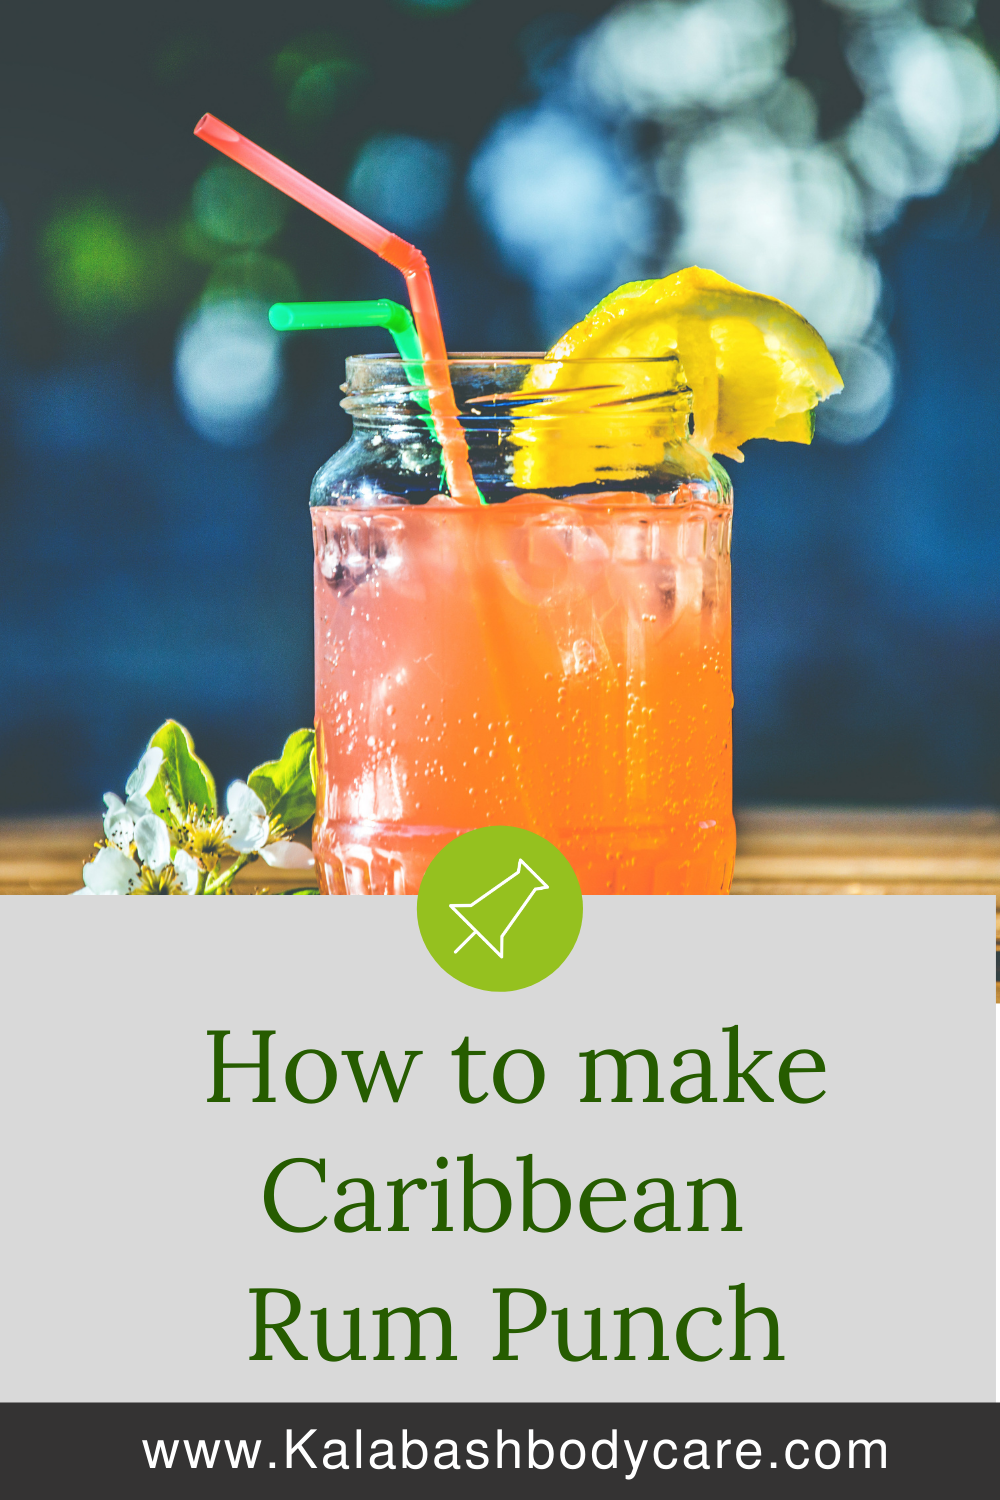 How to make Caribbean Rum Punch text and cocktail in a glass with straws on blue background